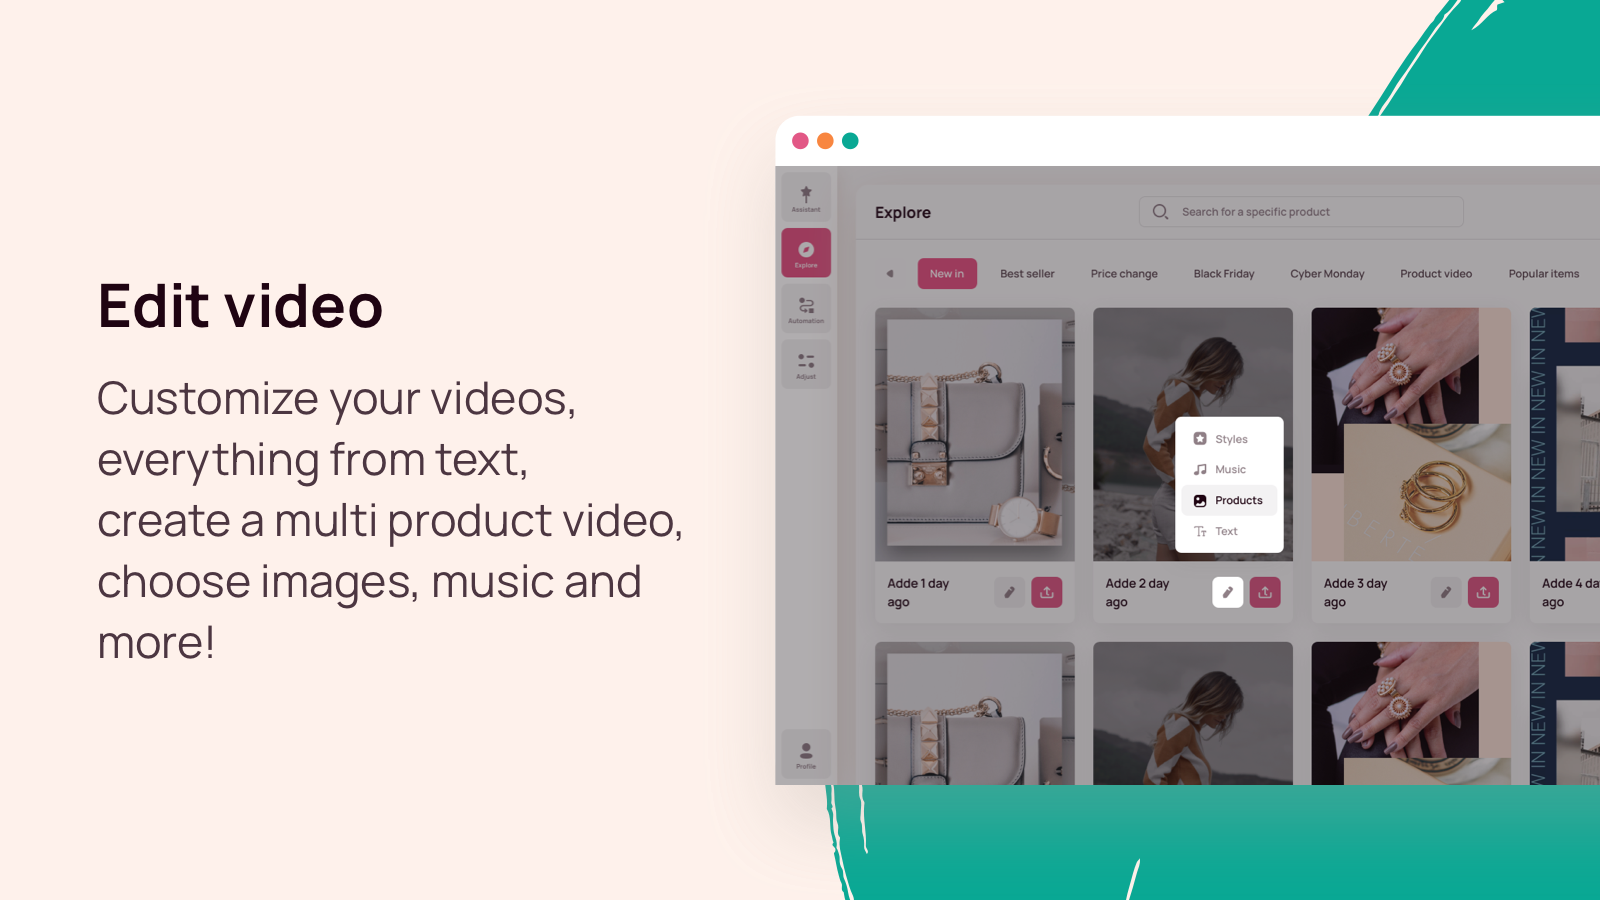 Customize your videos, everything from text, music & products